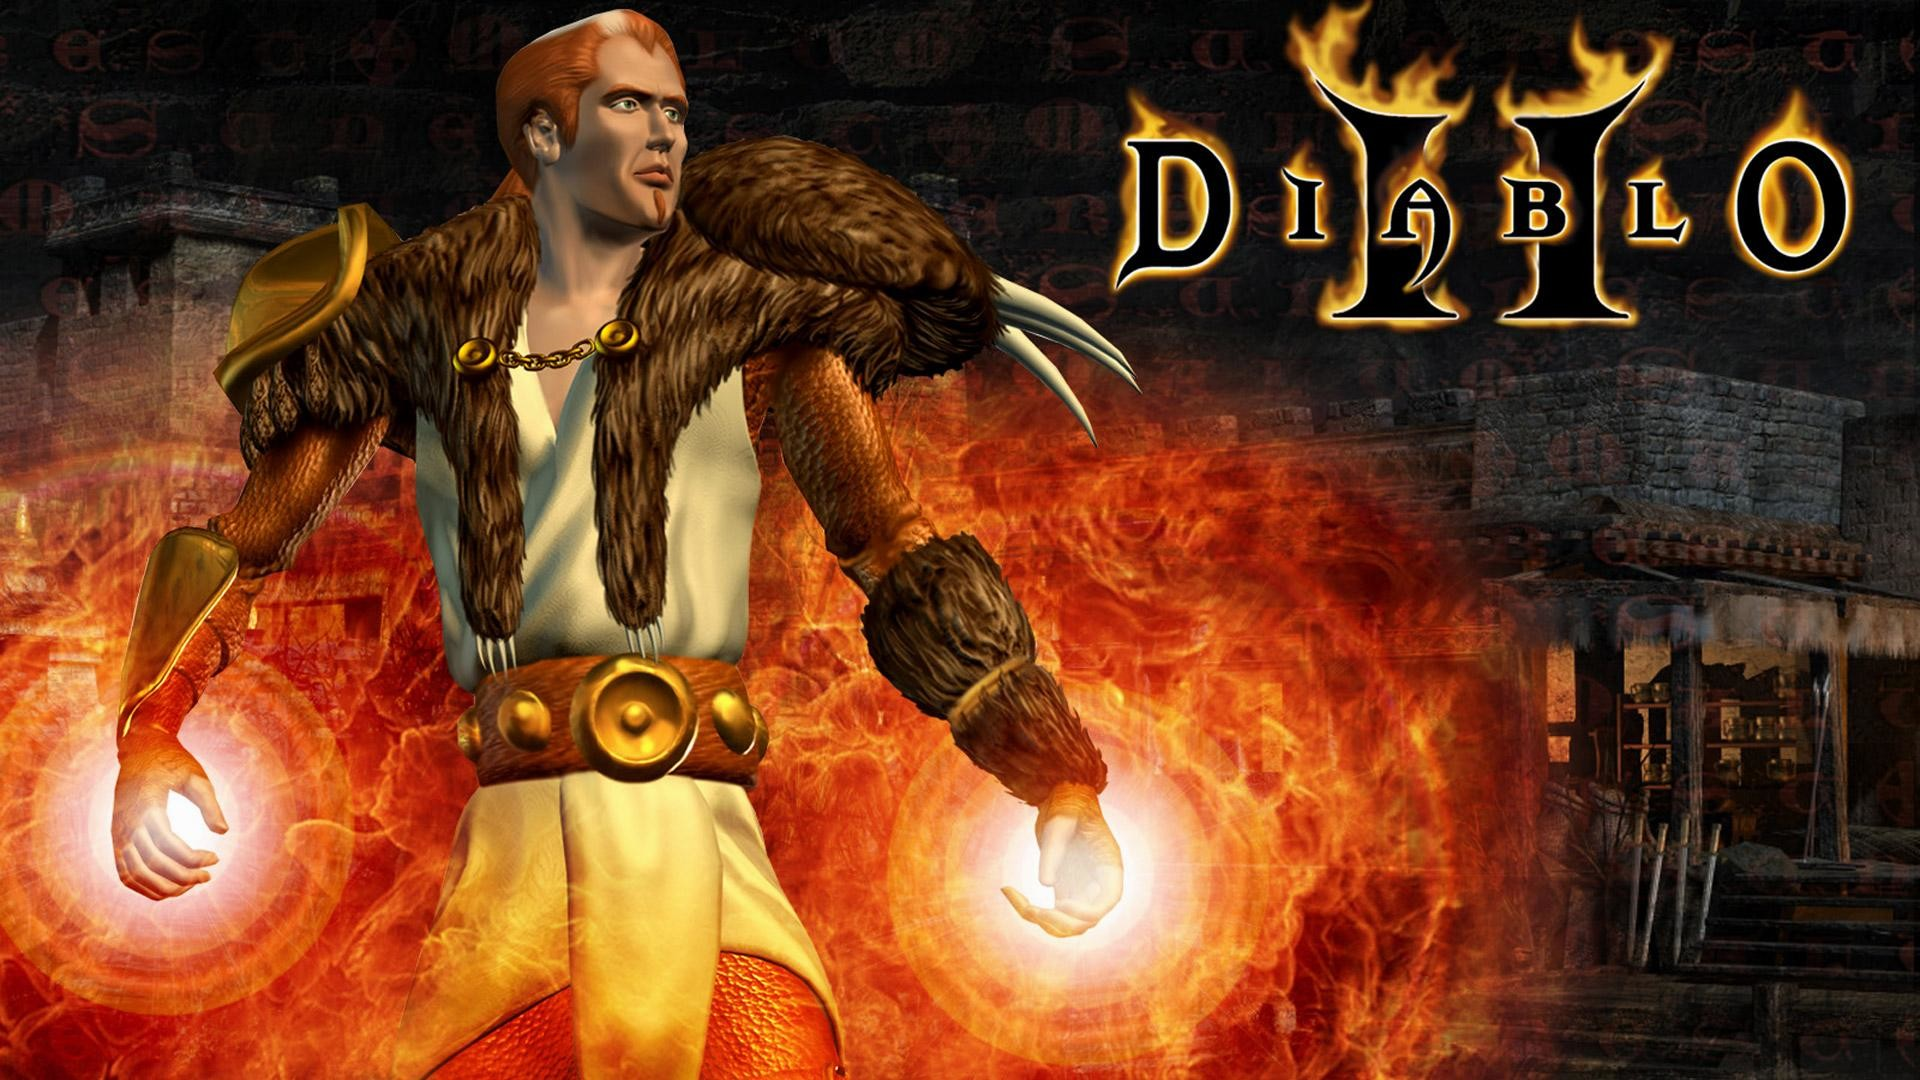 Diablo 2 Backgrounds Posted By Zoey Thompson